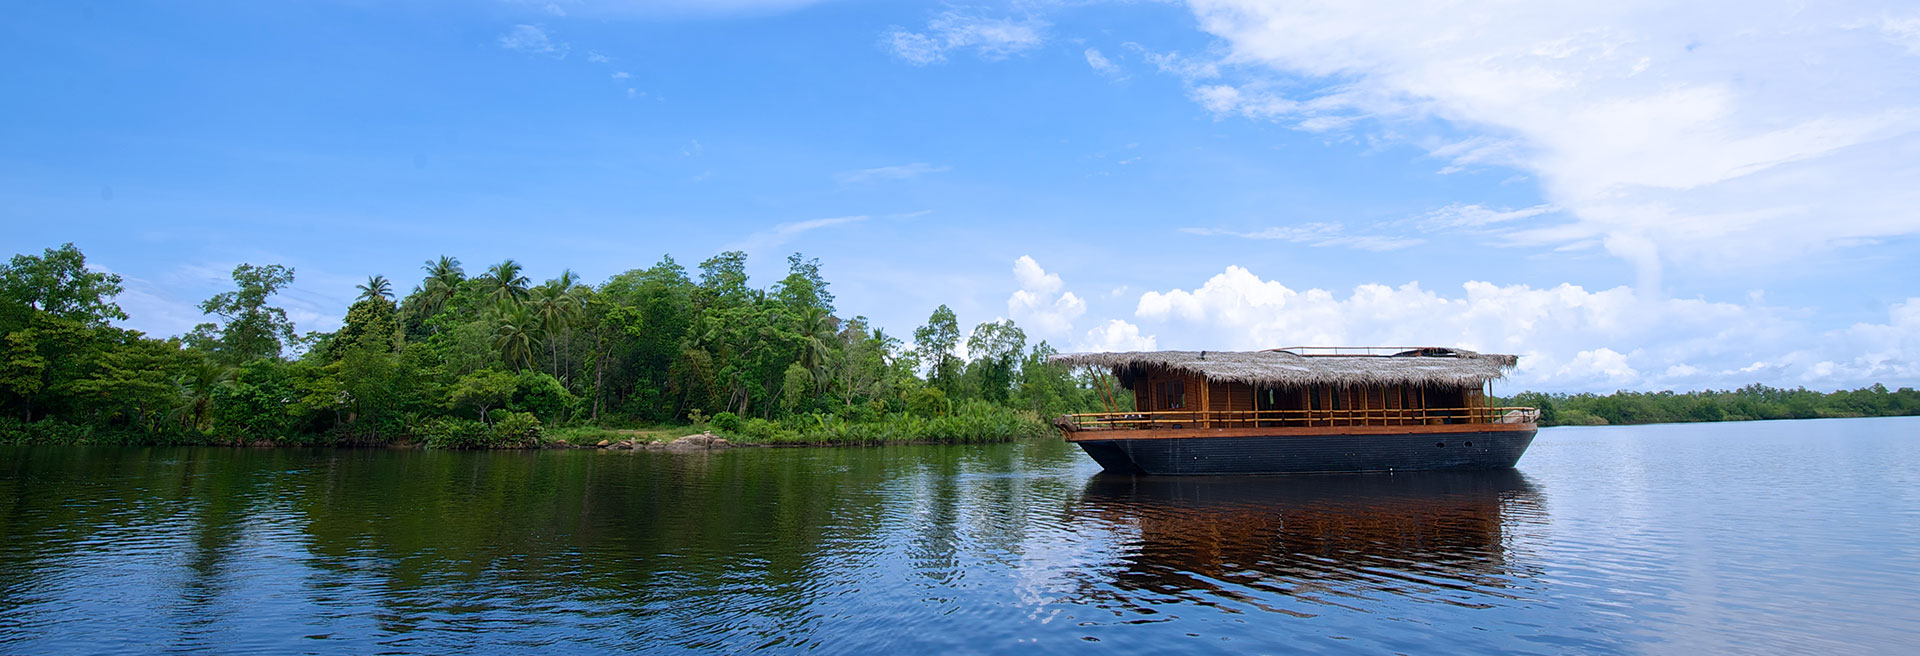 boat house on the river with green forest